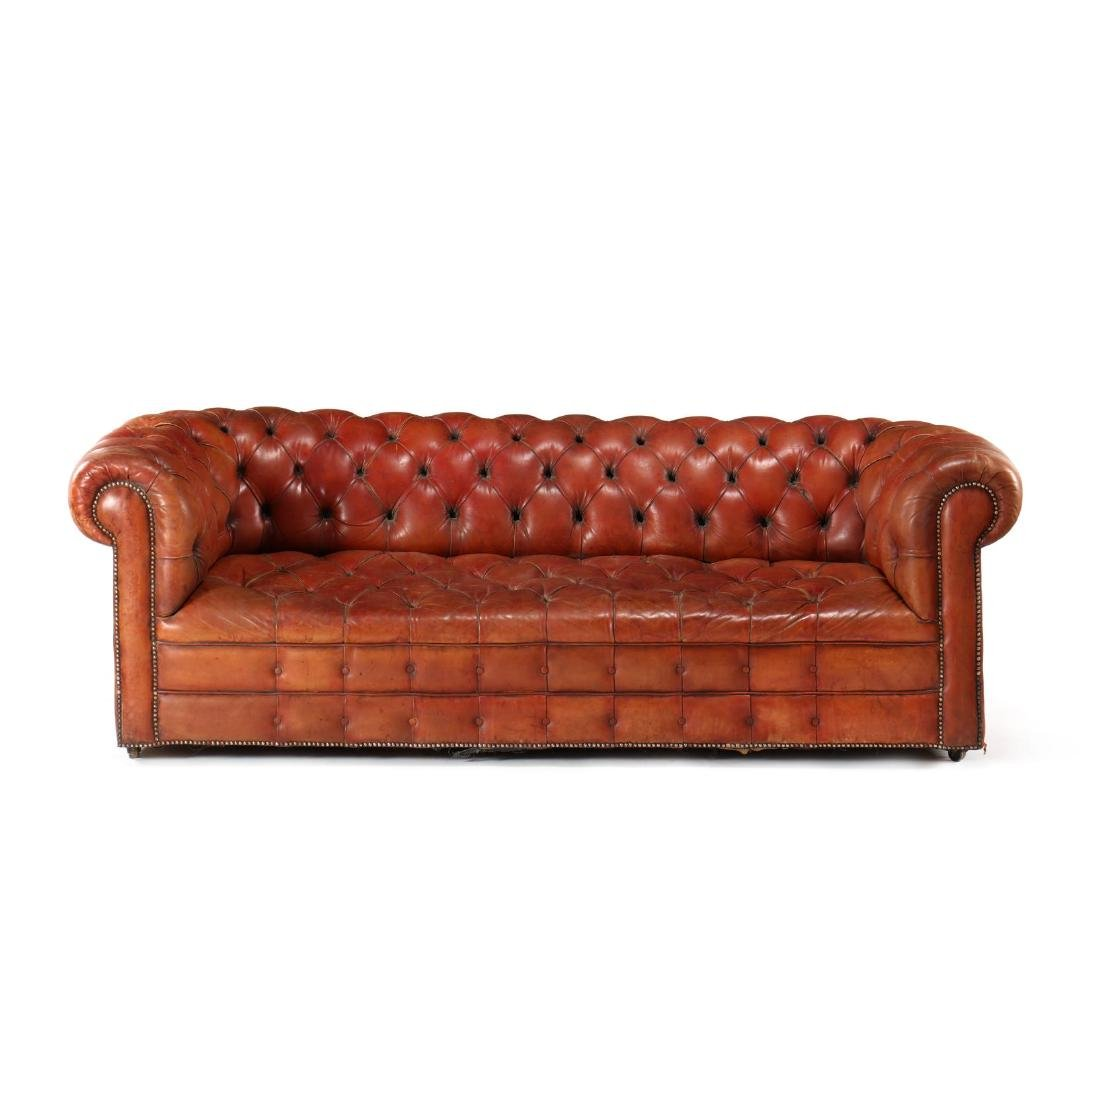 English Art Deco Leather Upholstered Chesterfield Sofa